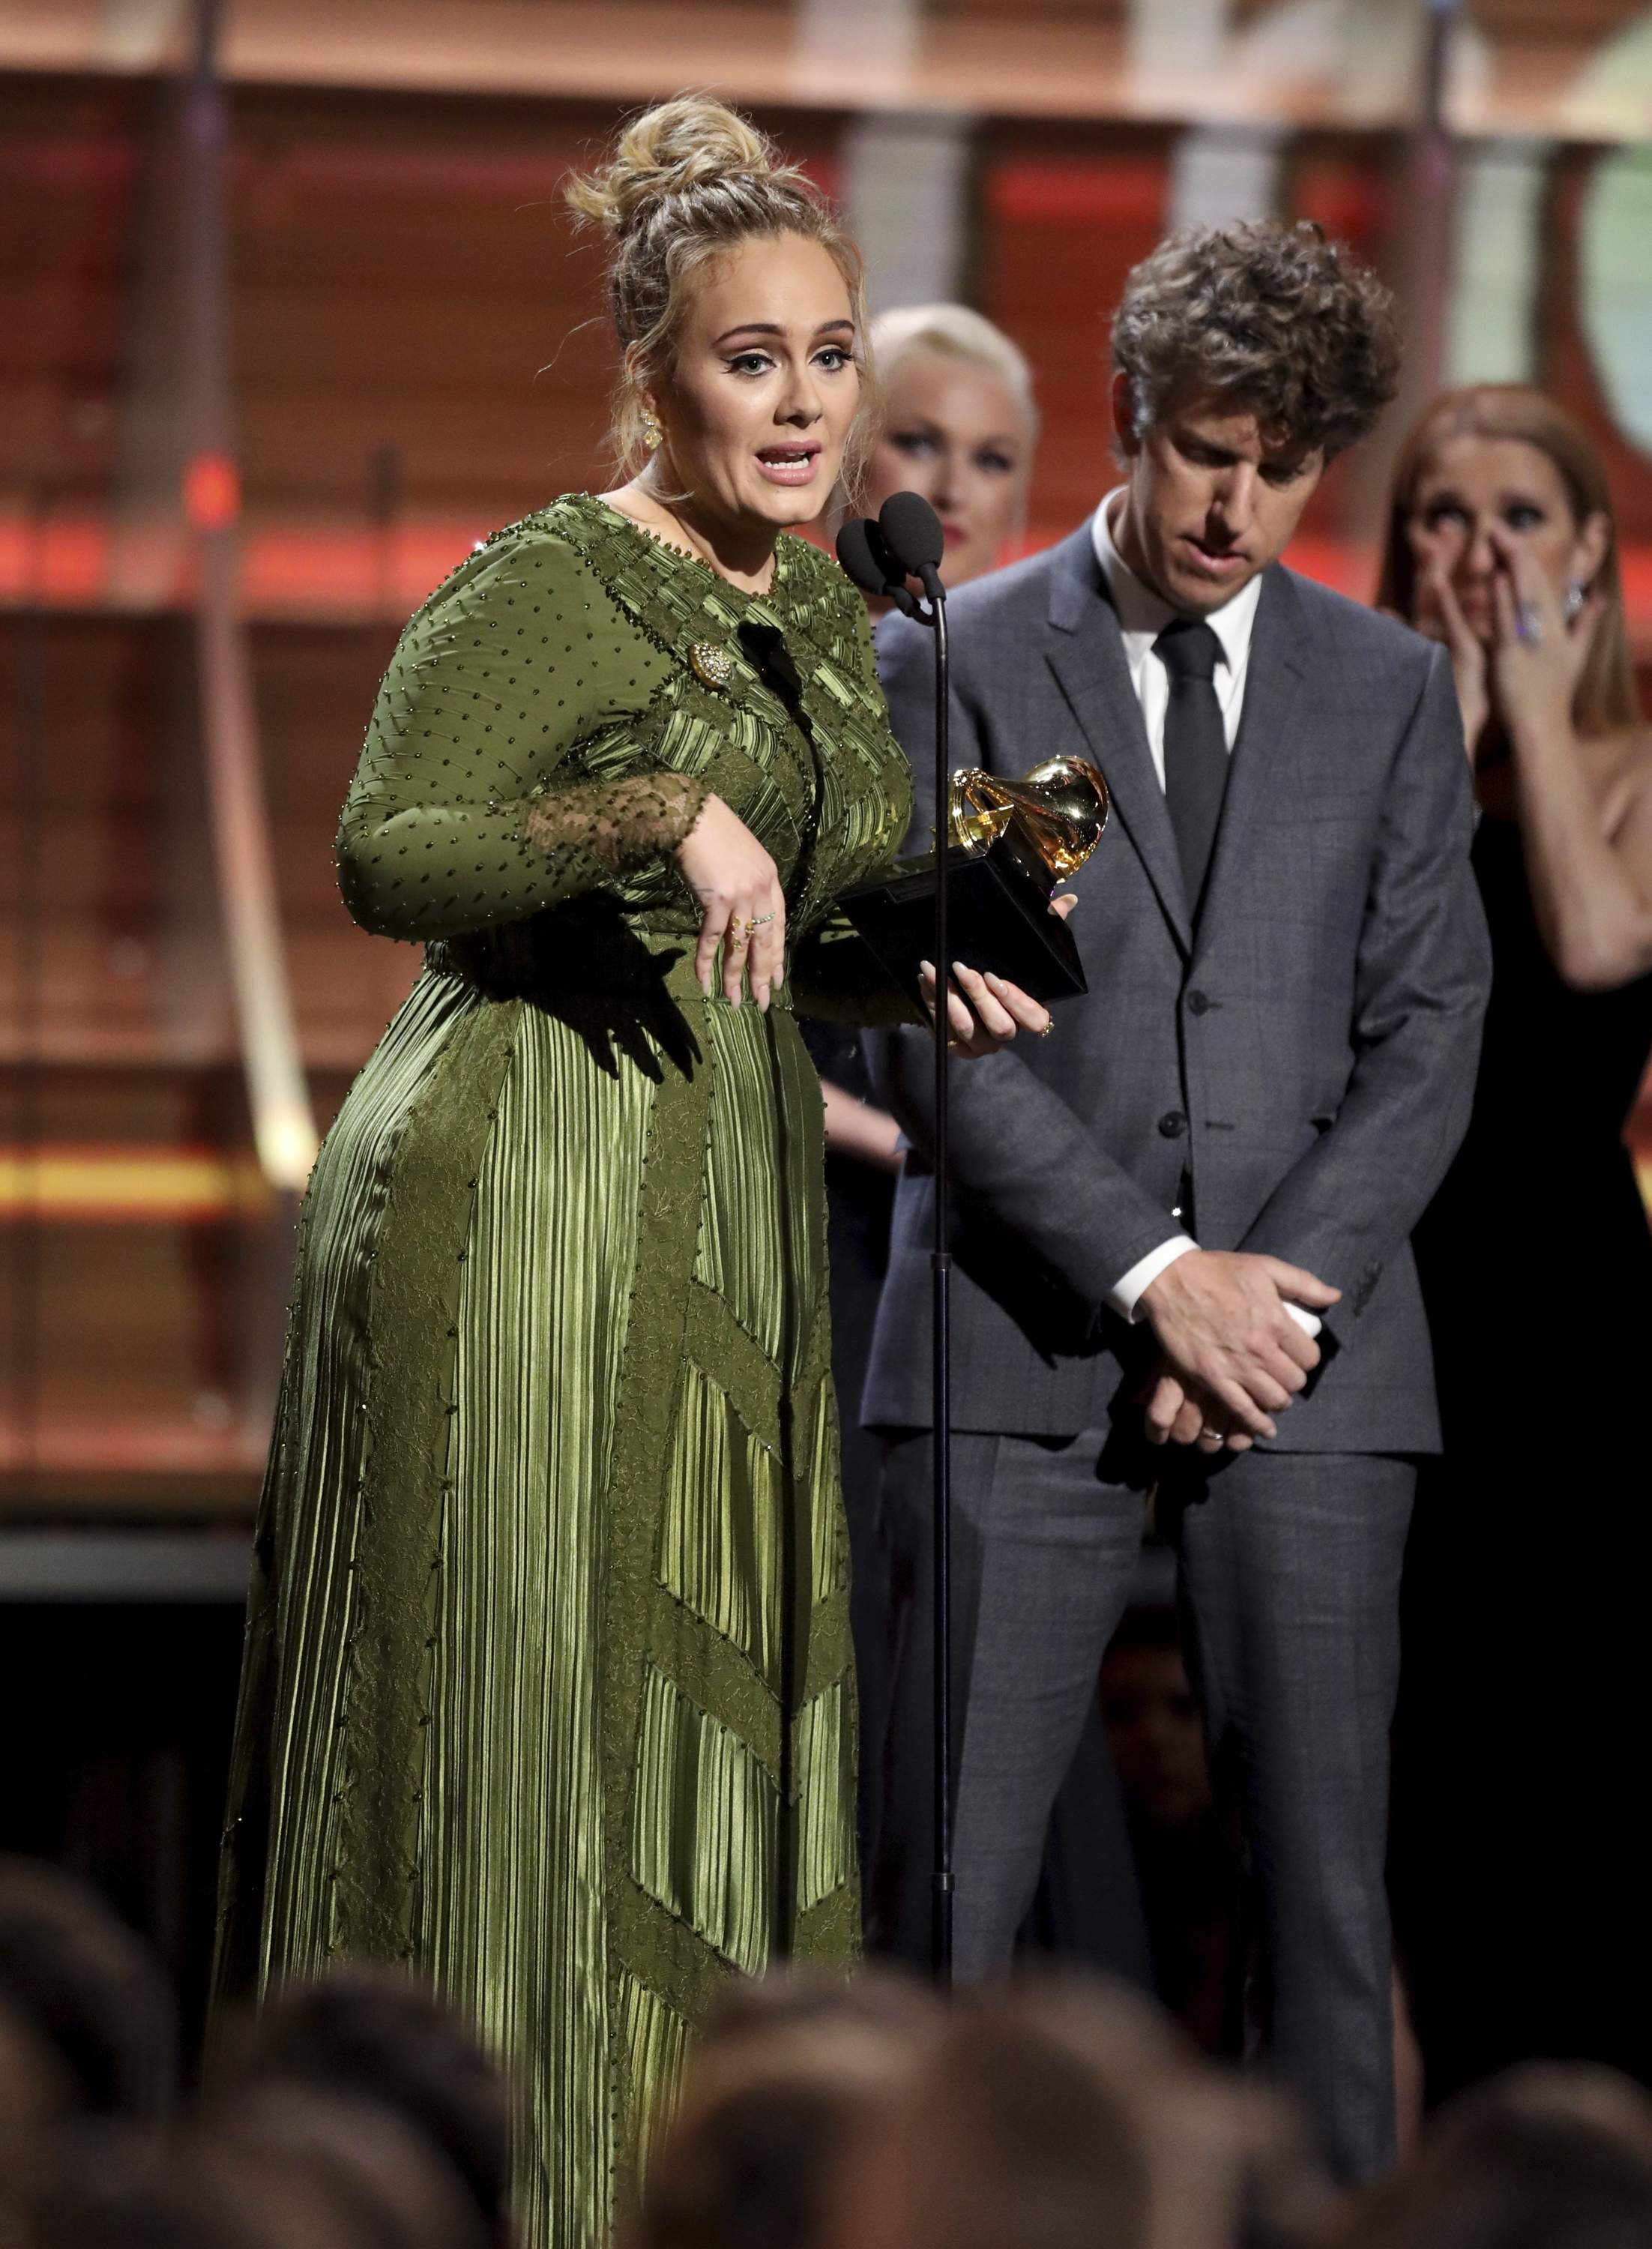 Adele accepts the award for song of the year for 'Hello' at the 59th annual Grammy Awards on Sunday, Feb. 12, 2017, in Los Angeles. THE ASSOCIATED PRESS